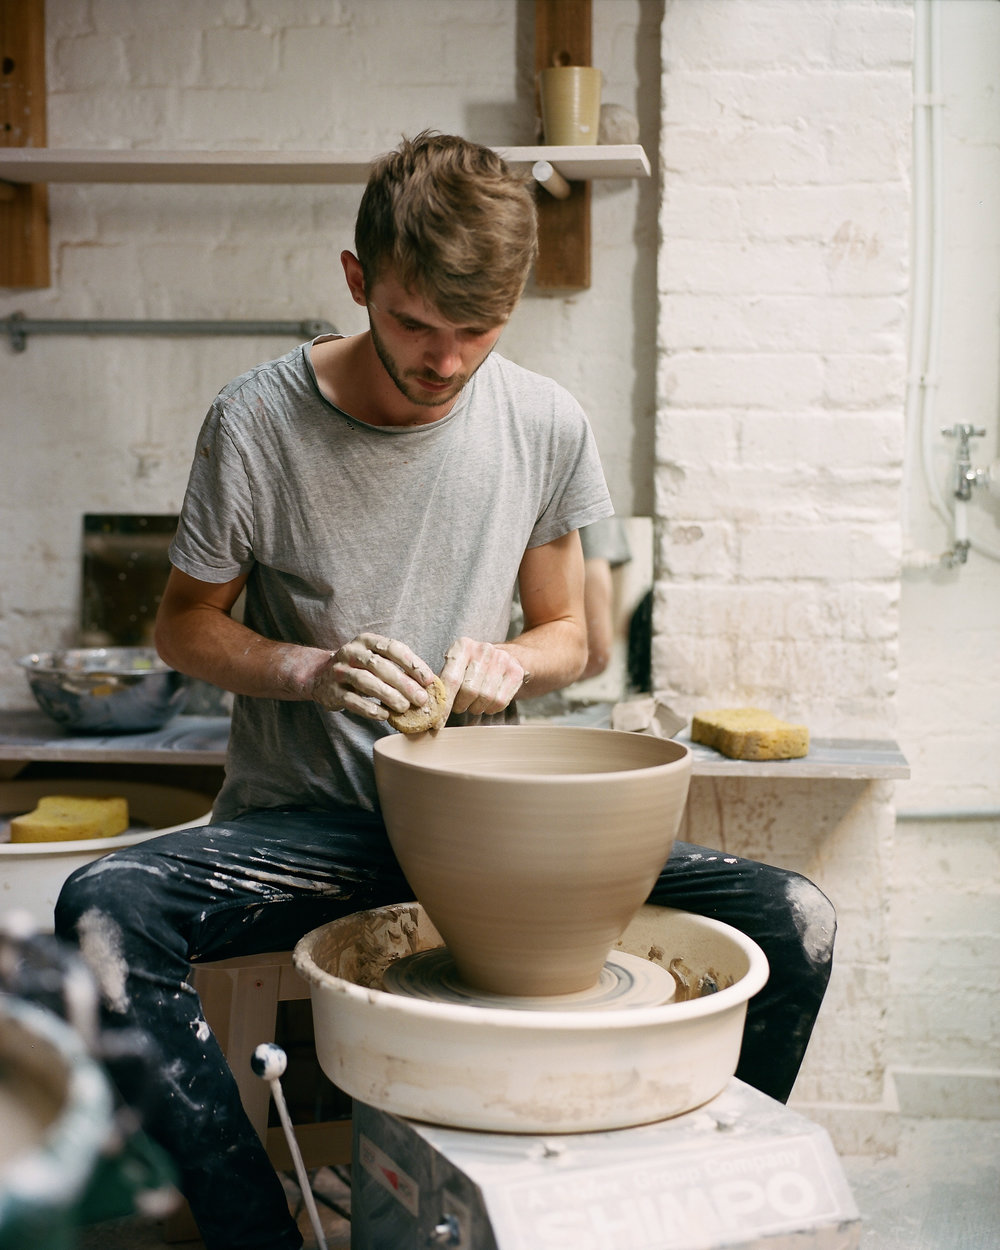 Photo by Sophie Gladstone taken @ Crown Works Pottery